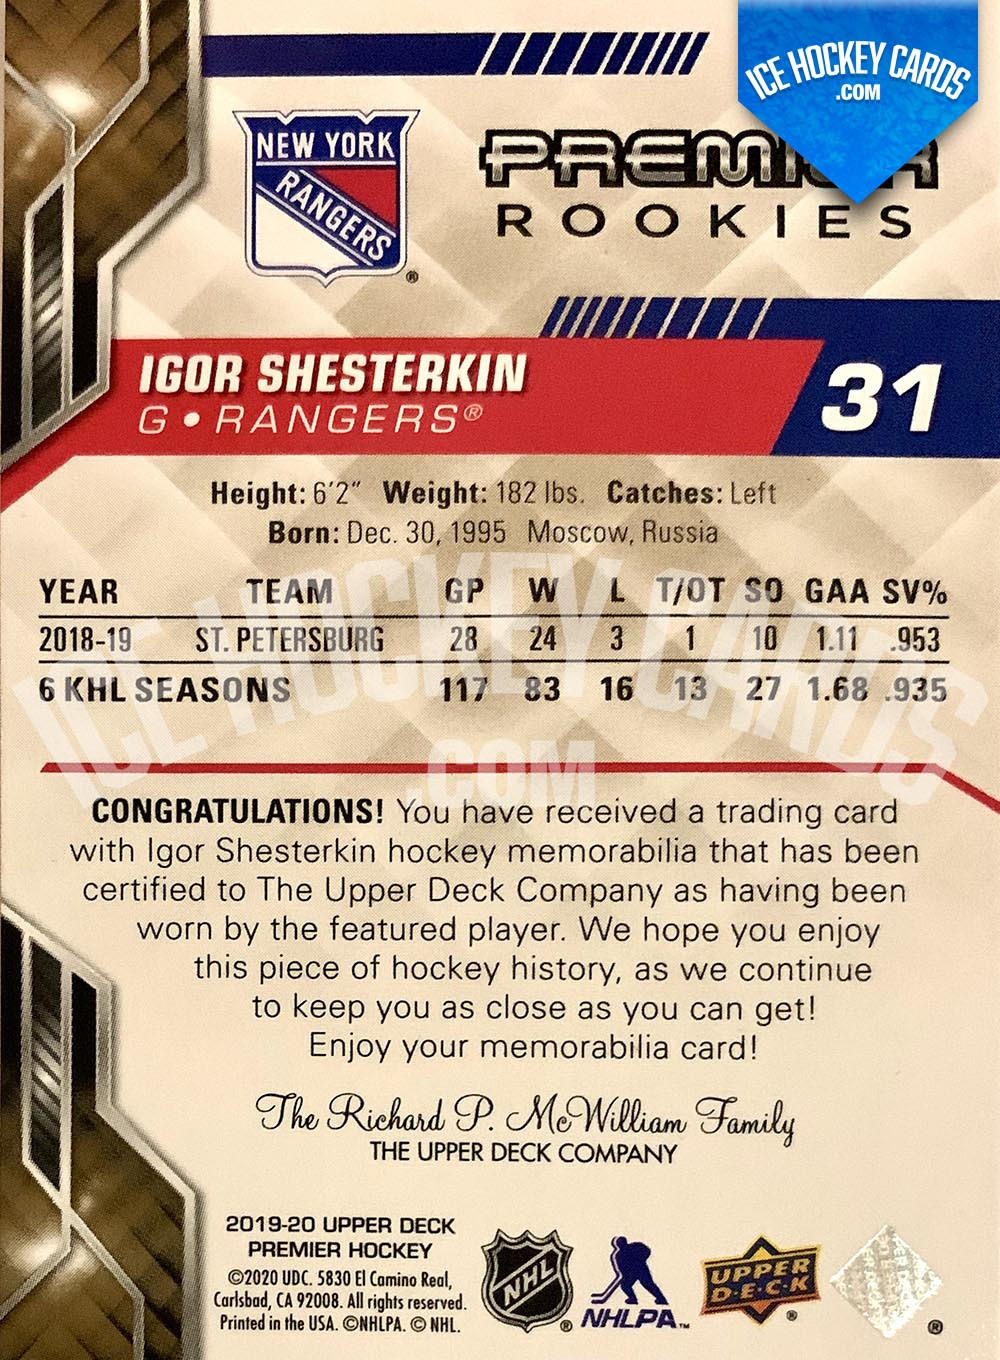 Upper Deck - Premier Hockey 2019-20 - Igor Shesterkin Premier Rookies Patch Card back